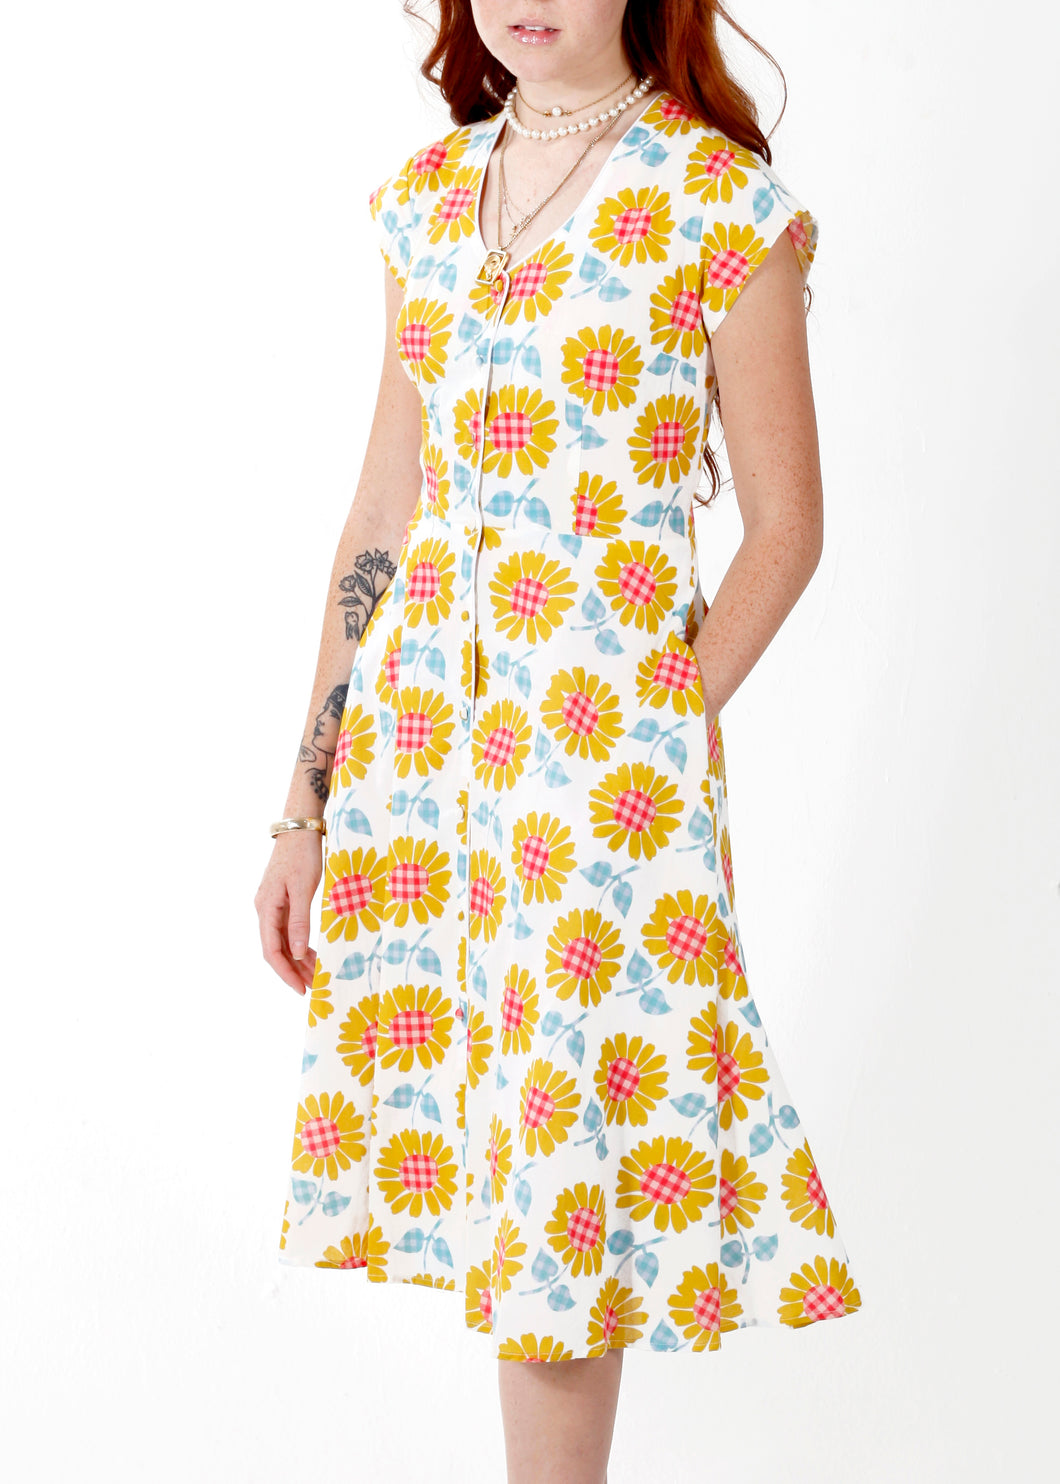 Hepburn Dress in Park Life